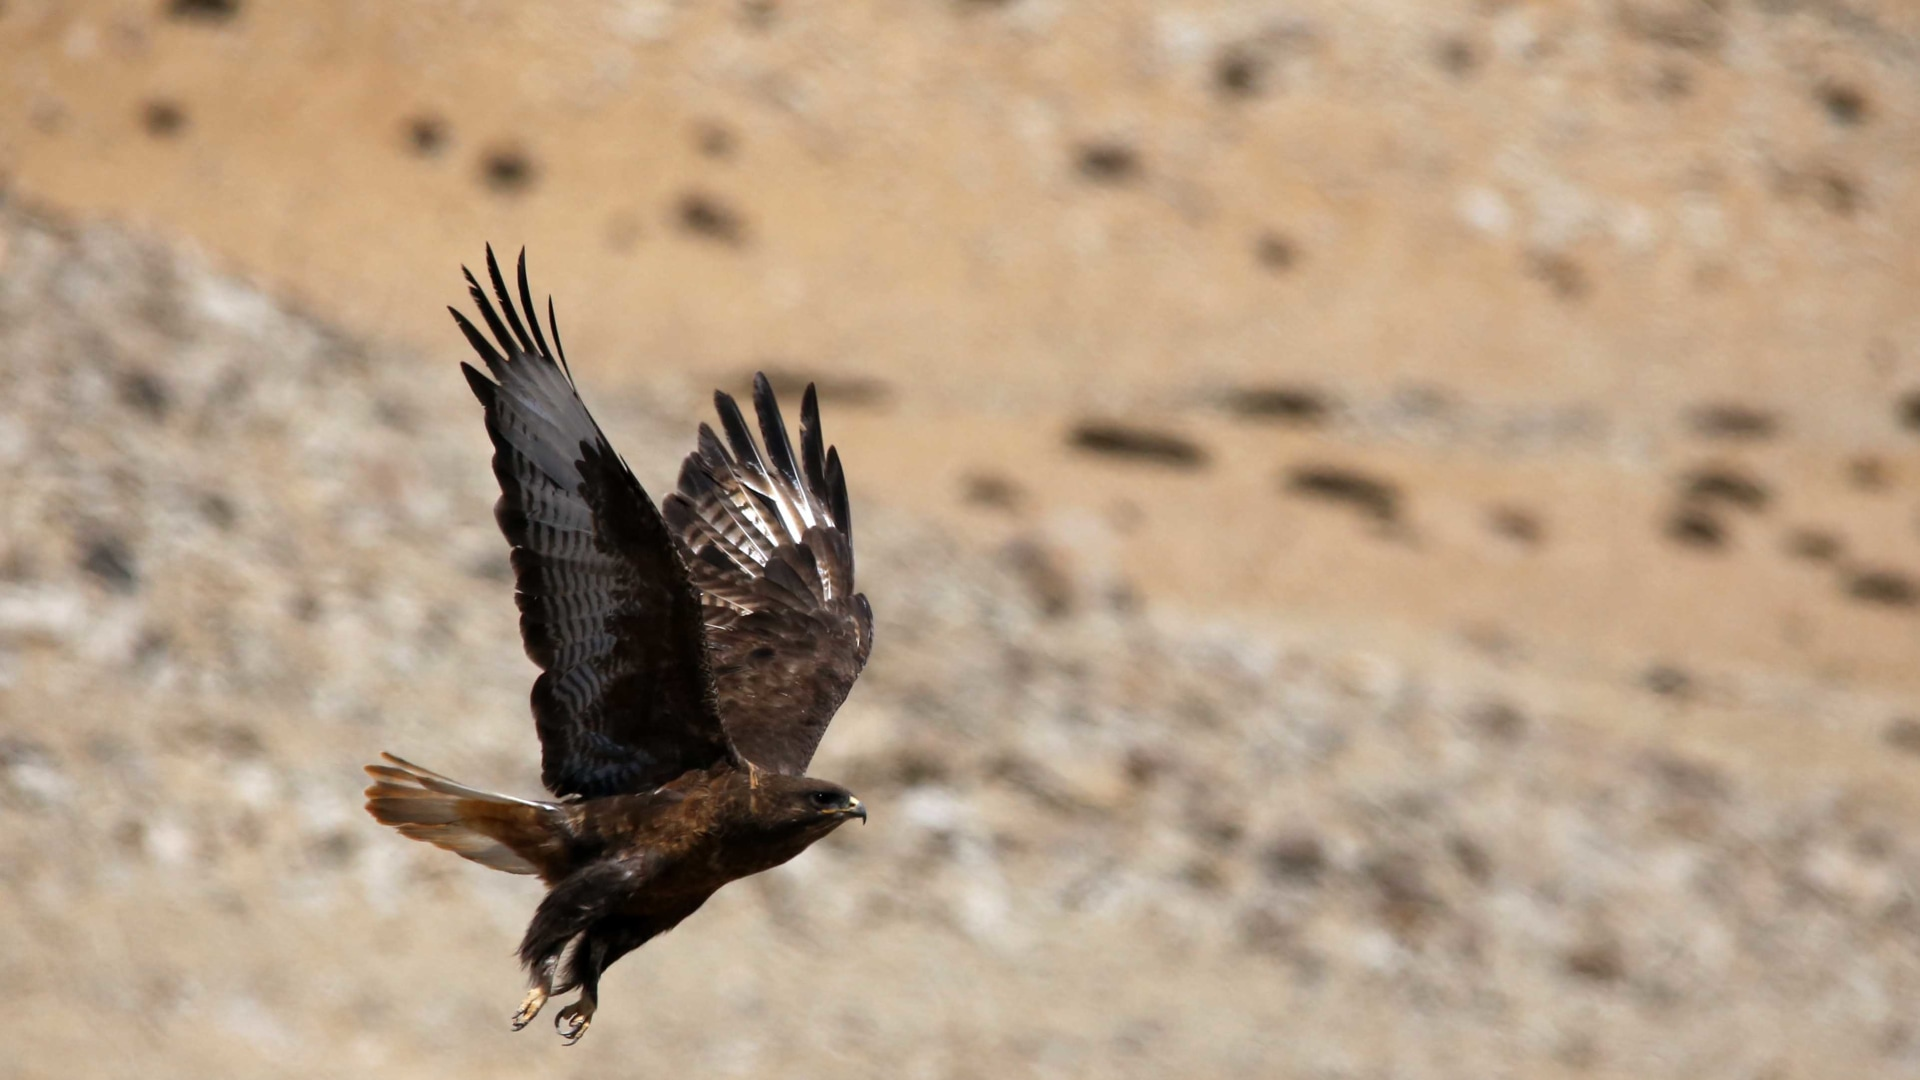 The Soaring Raptor of the Changthang Skies